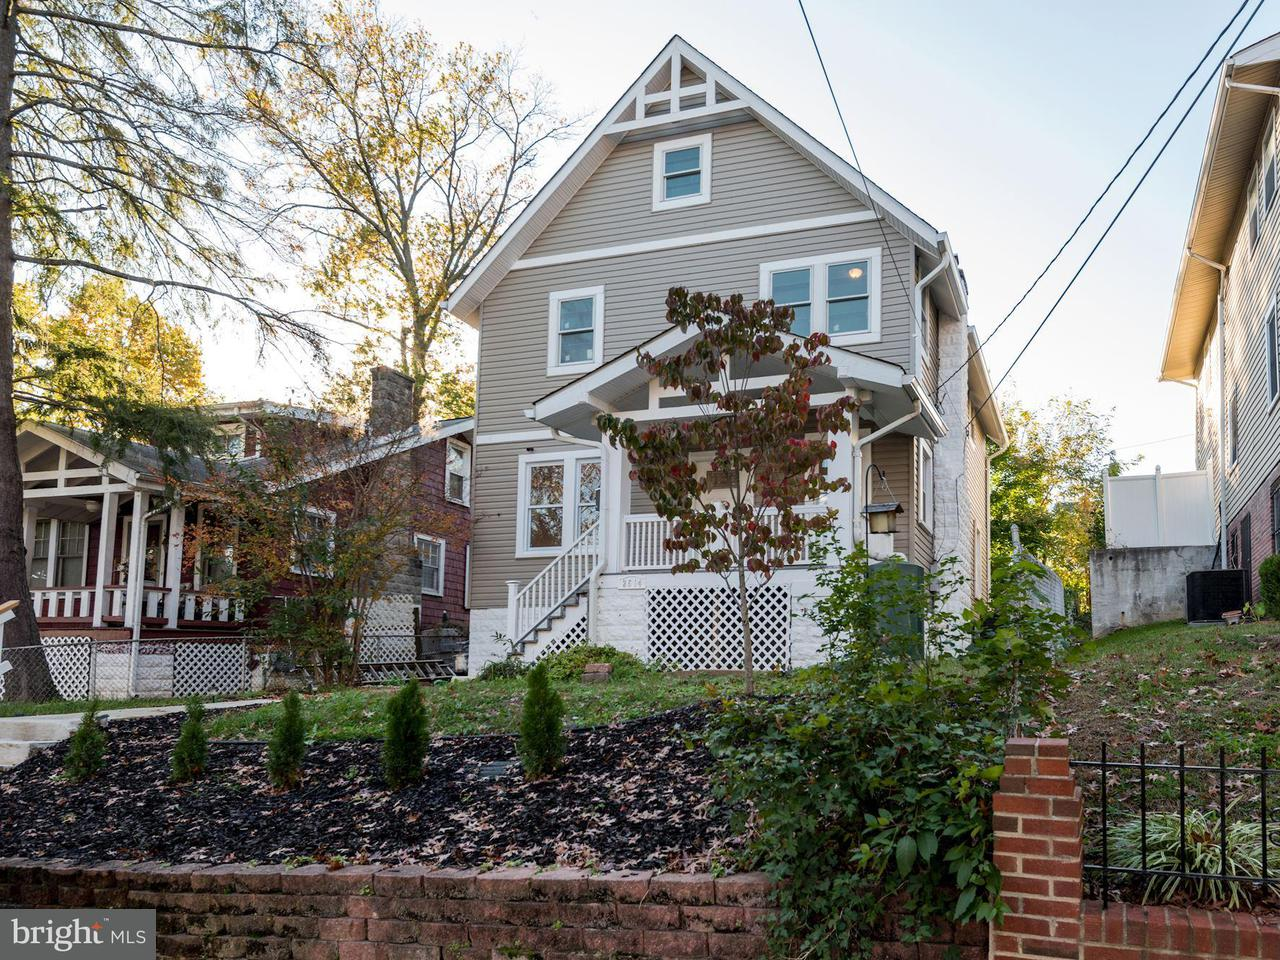 Single Family Home for Sale at 2614 22nd St Ne 2614 22nd St Ne Washington, District Of Columbia 20018 United States